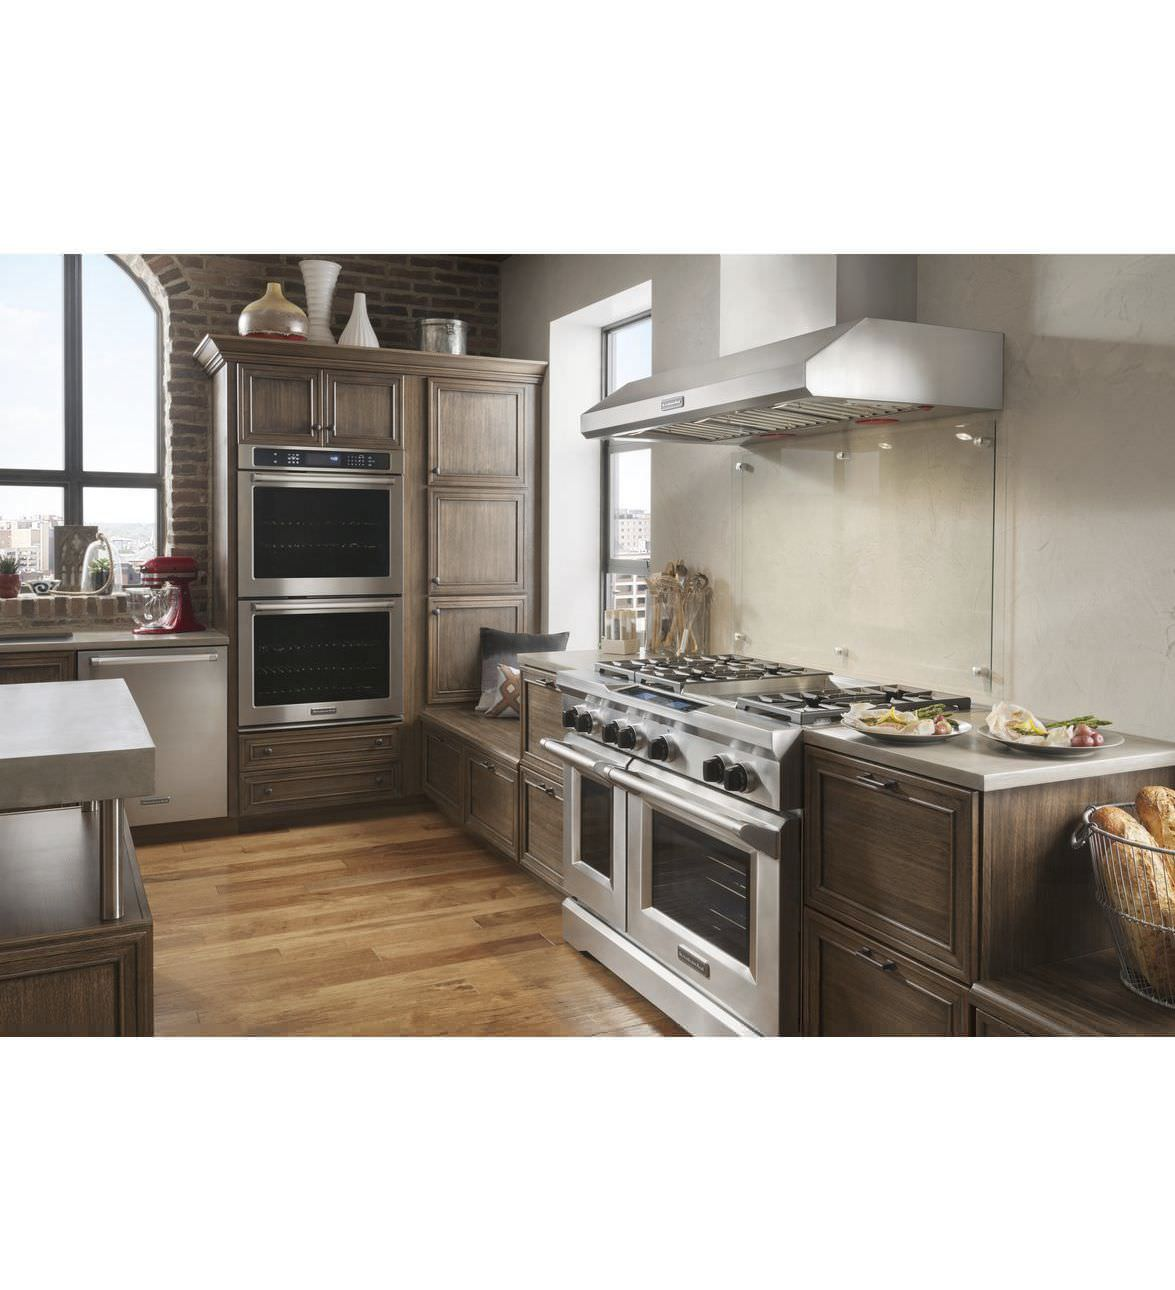 Charming Wall Mounted Range Hood / With Built In Lighting KXW9748YSS KitchenAid ...